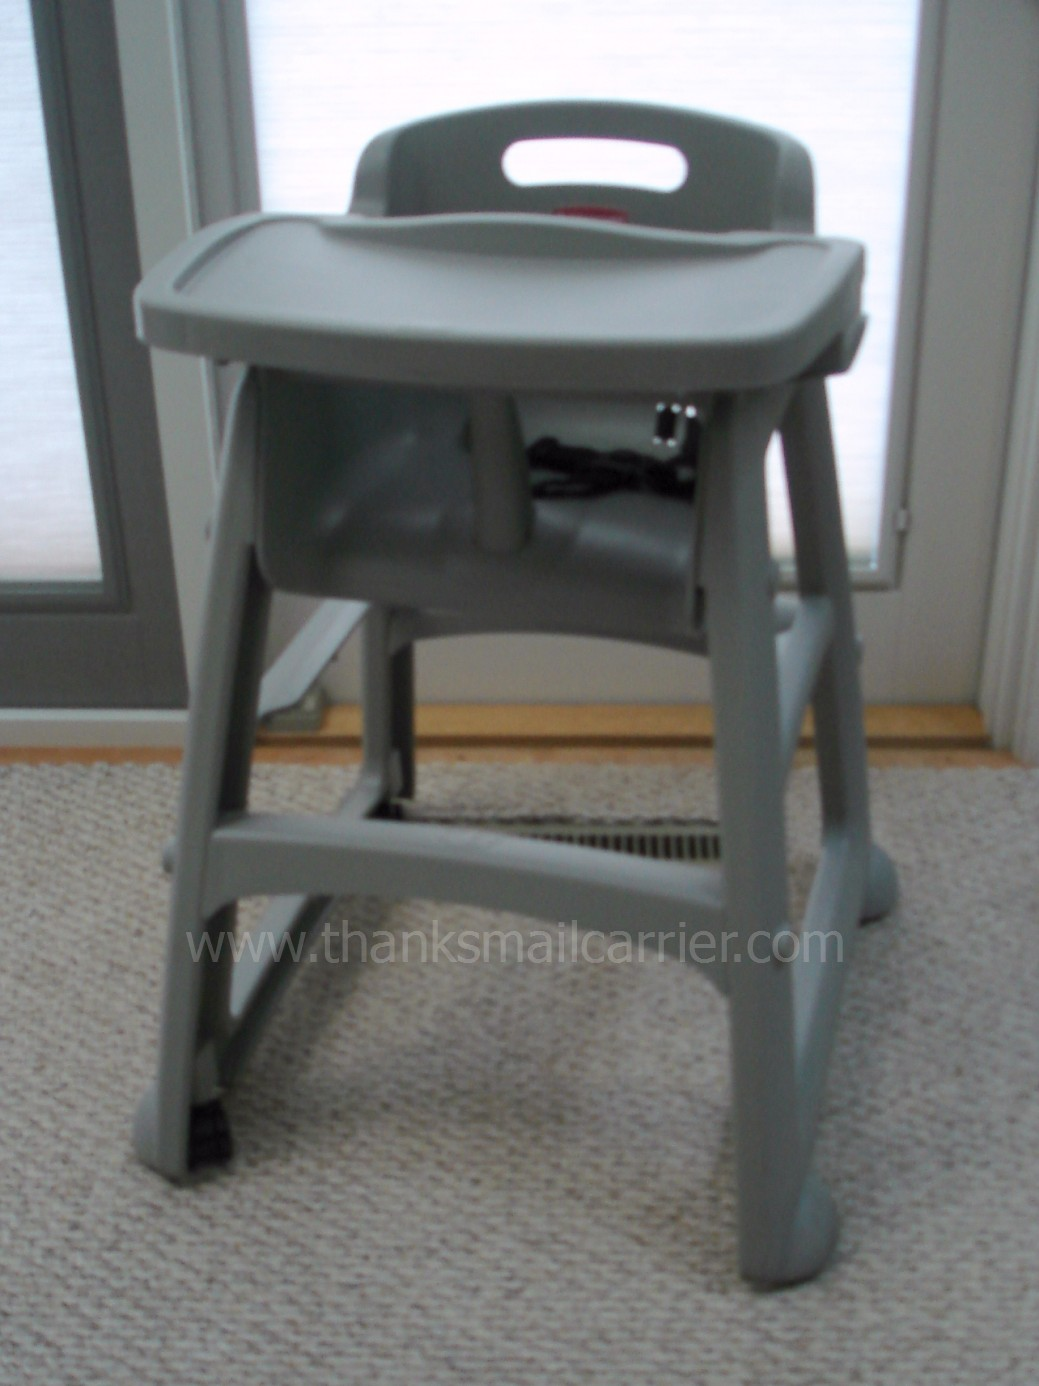 Baby chair for restaurant - Rubbermaid High Chair And Tray From Cleanitsupply Com Review Giveaway